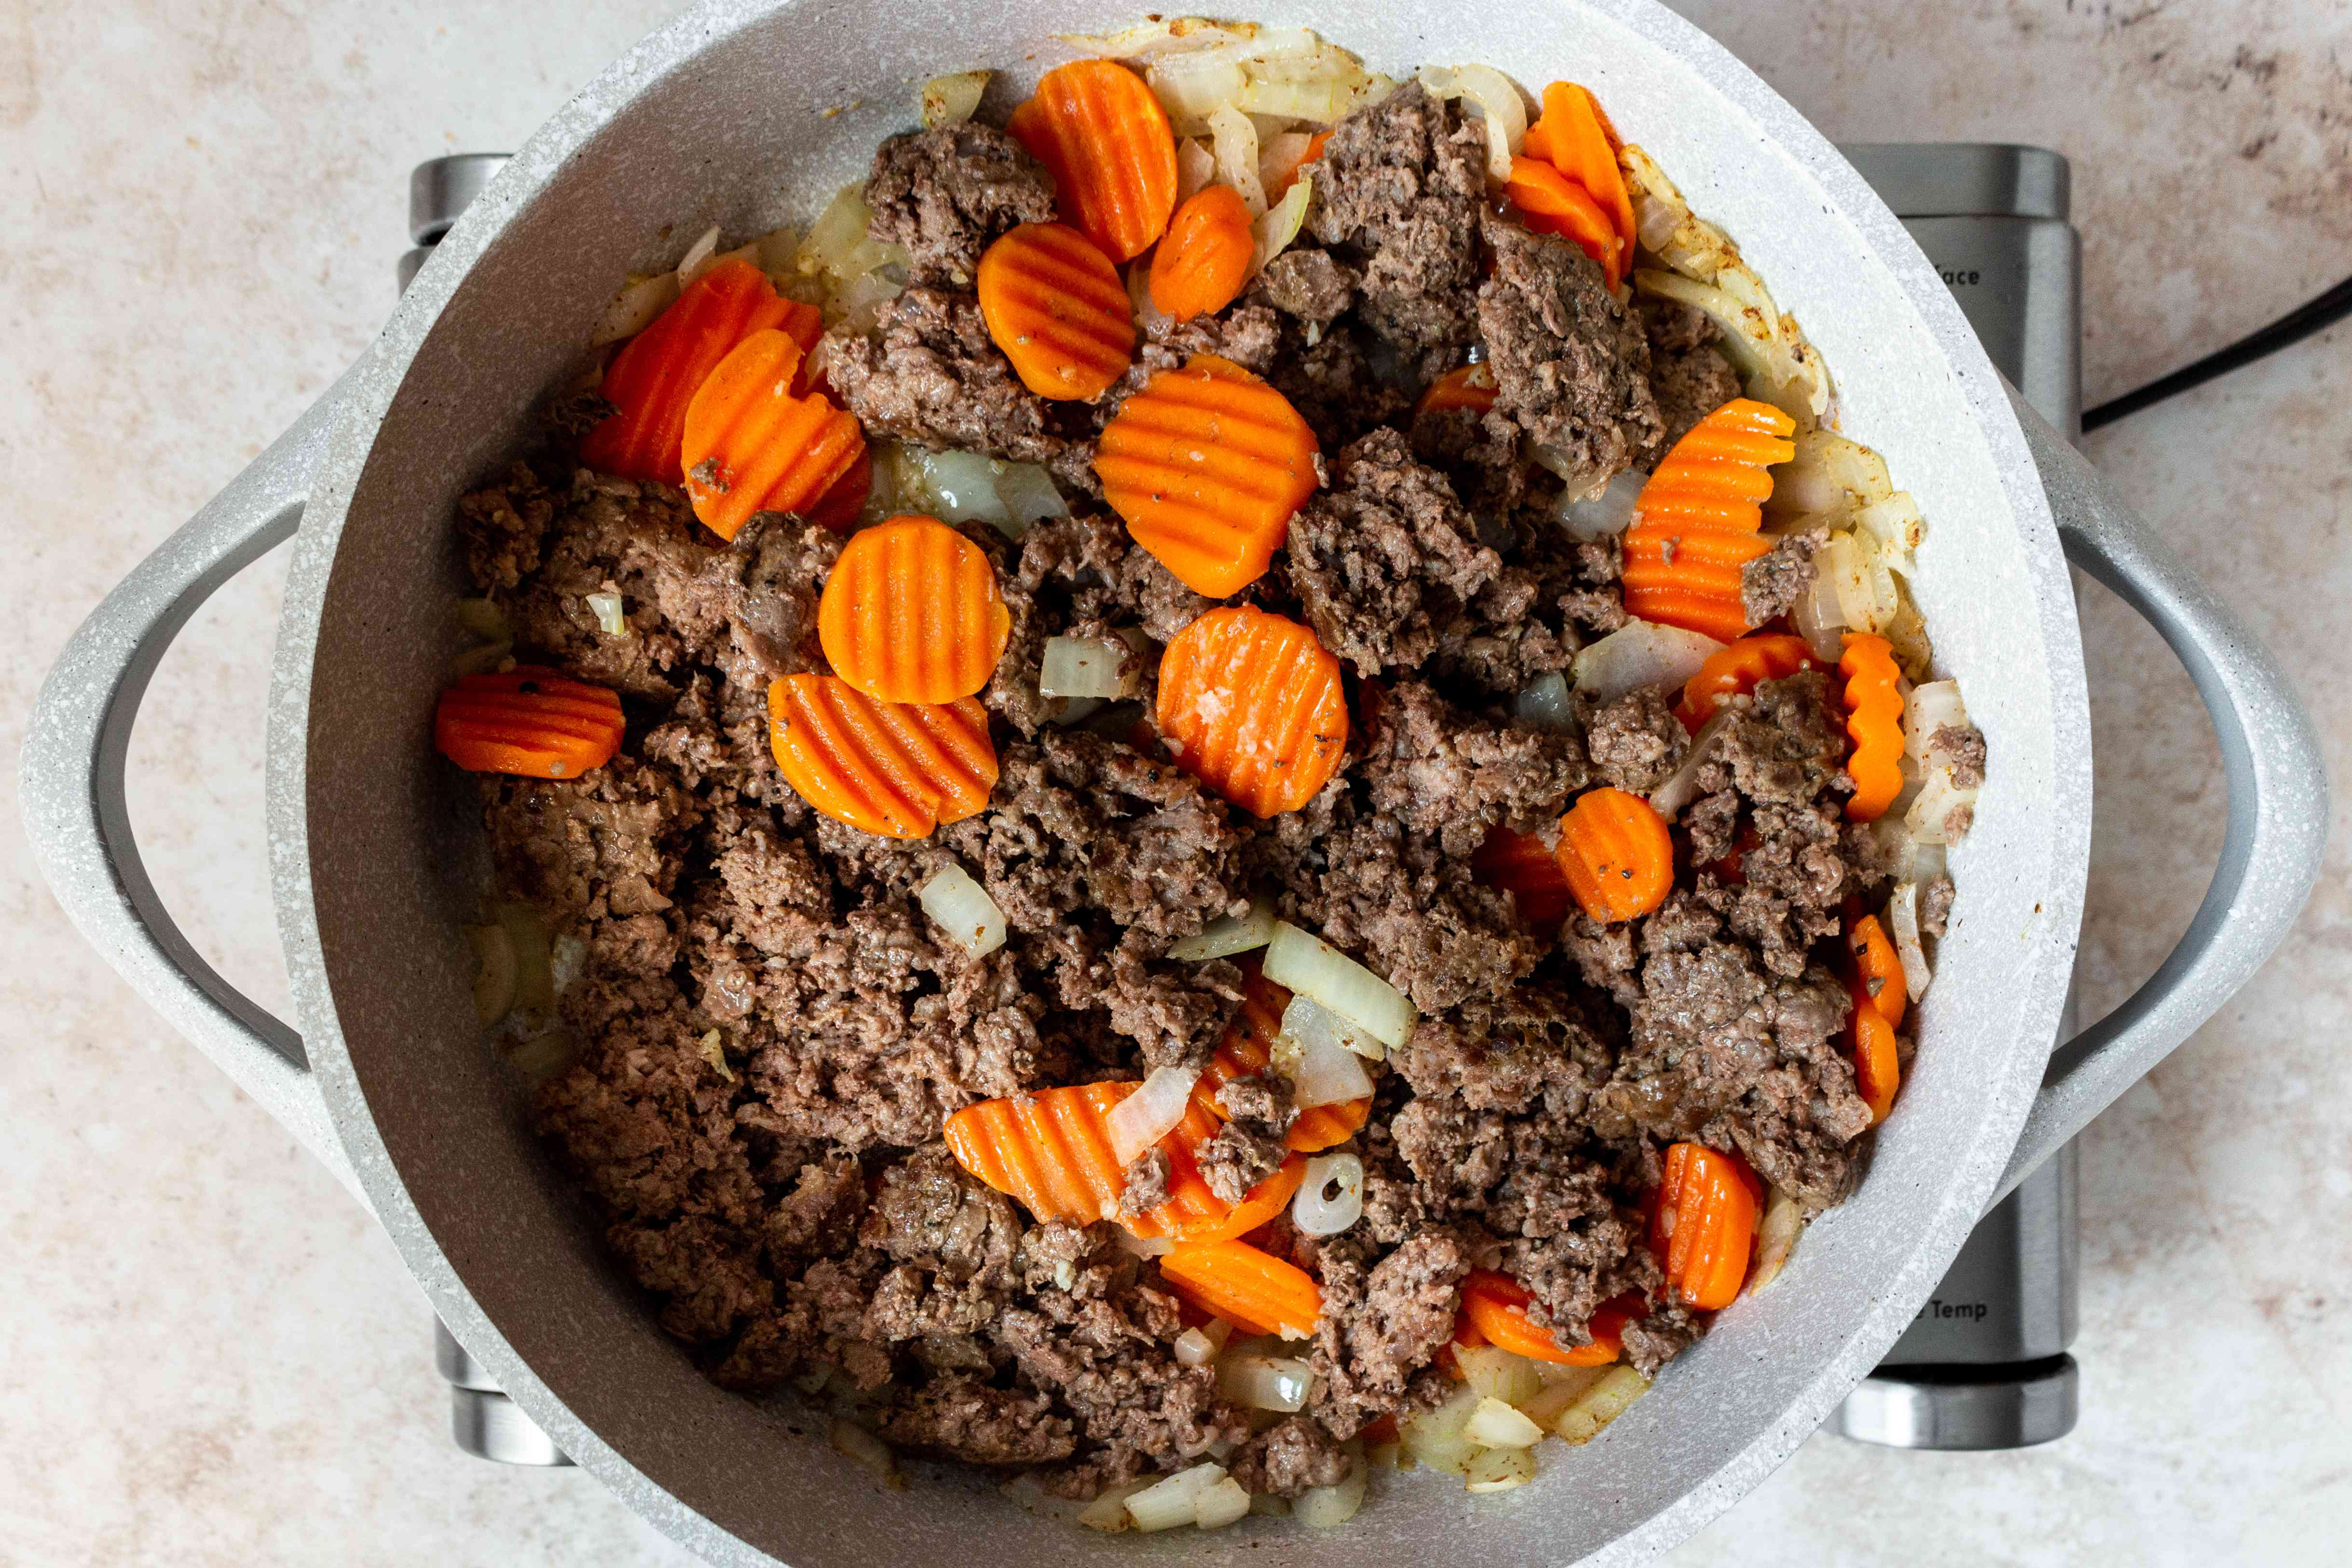 crumbled meatloaf added to the carrot and onion mixture in the skillet